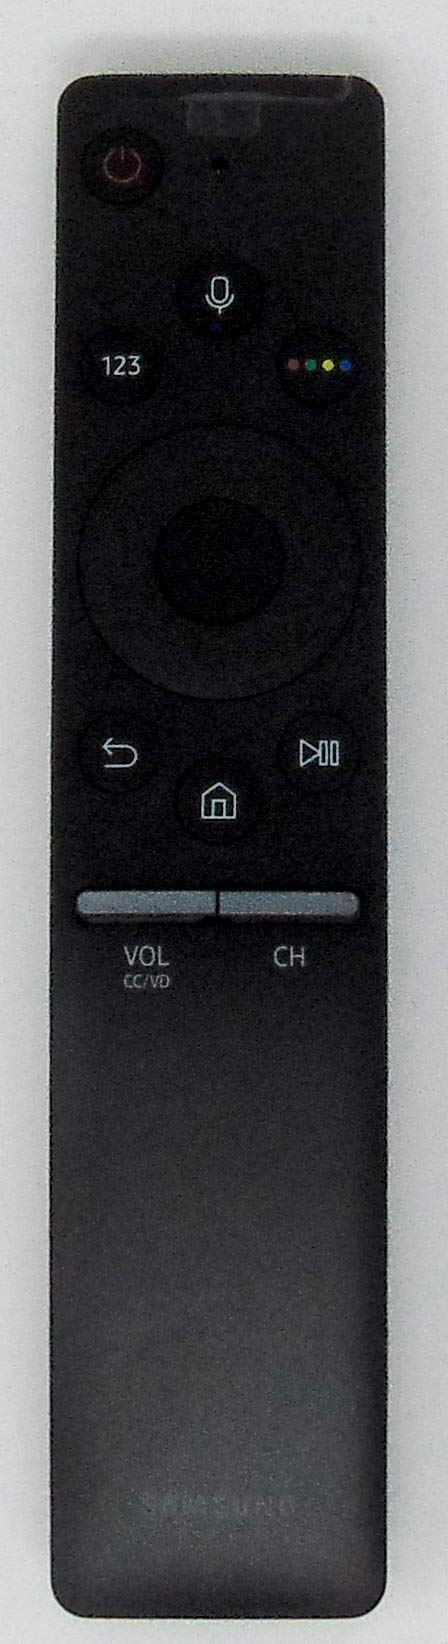 Samsung BN59-01292A Smart Remote Control for Multiple Models by Samsung